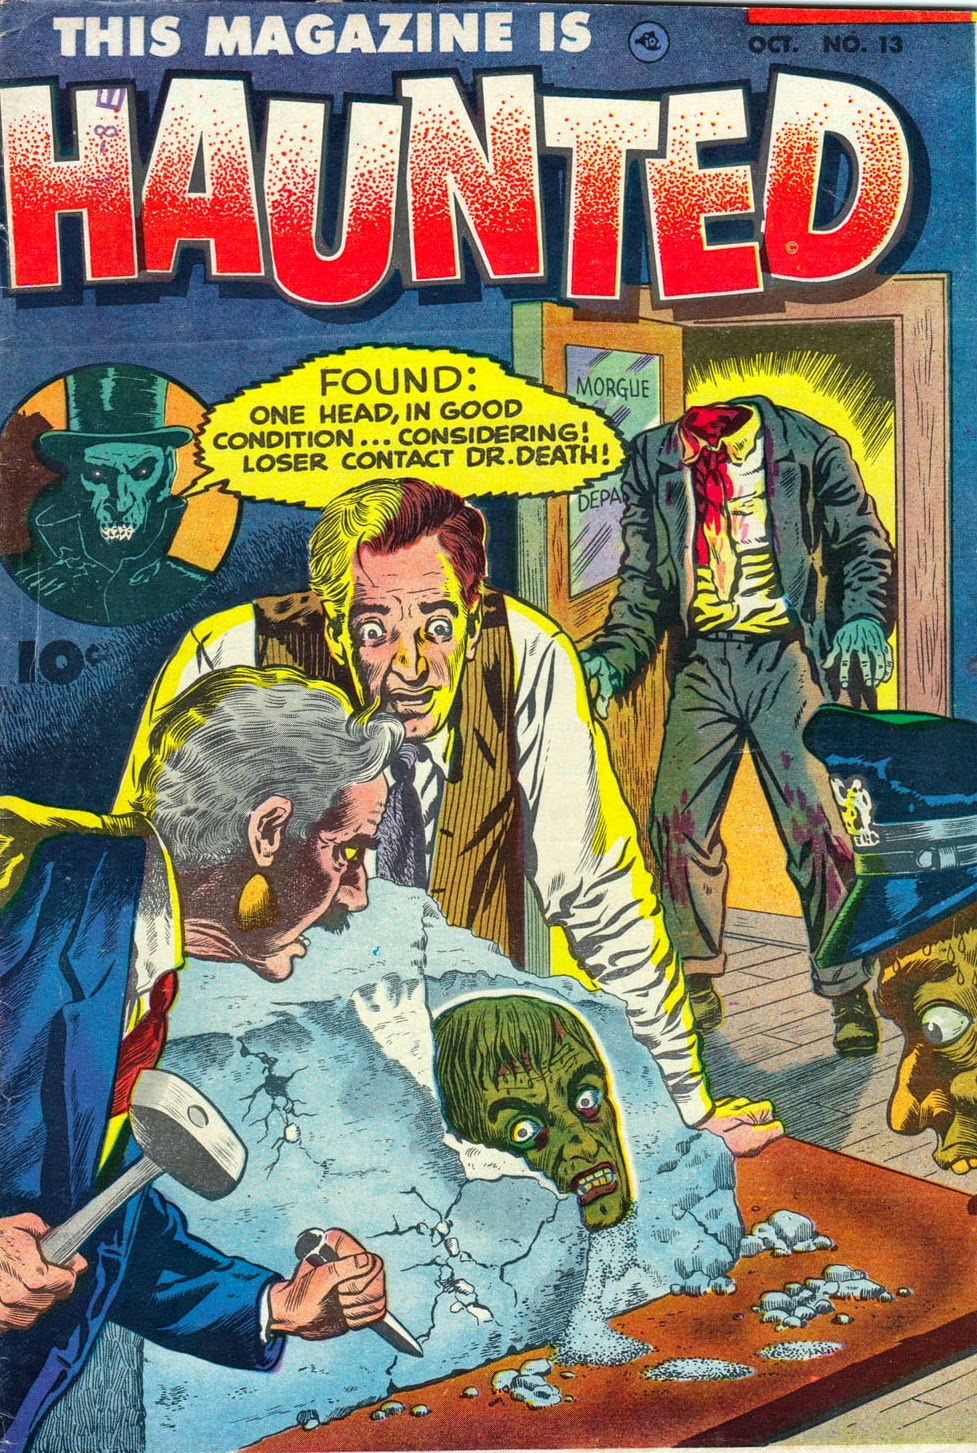 This Magazine Is Haunted 13 -- The Man Who Lost His Head